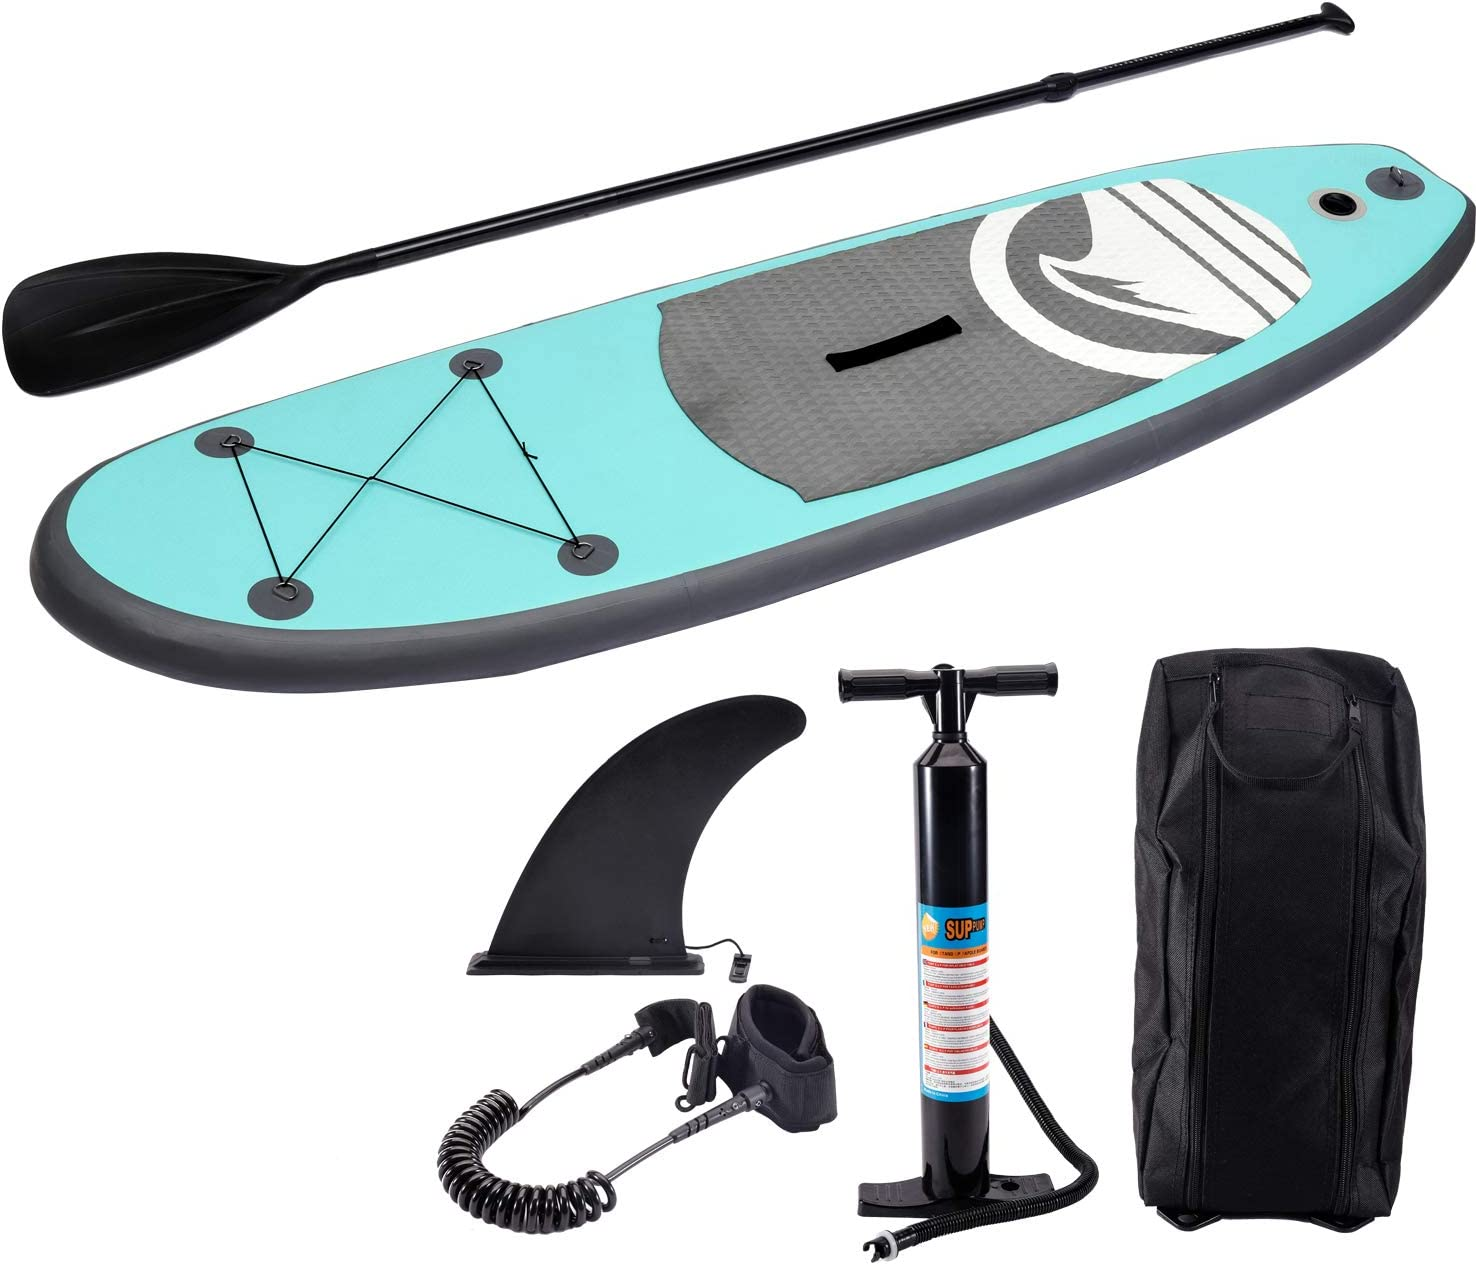 Wistar Inflatable Stand-up Paddle Board